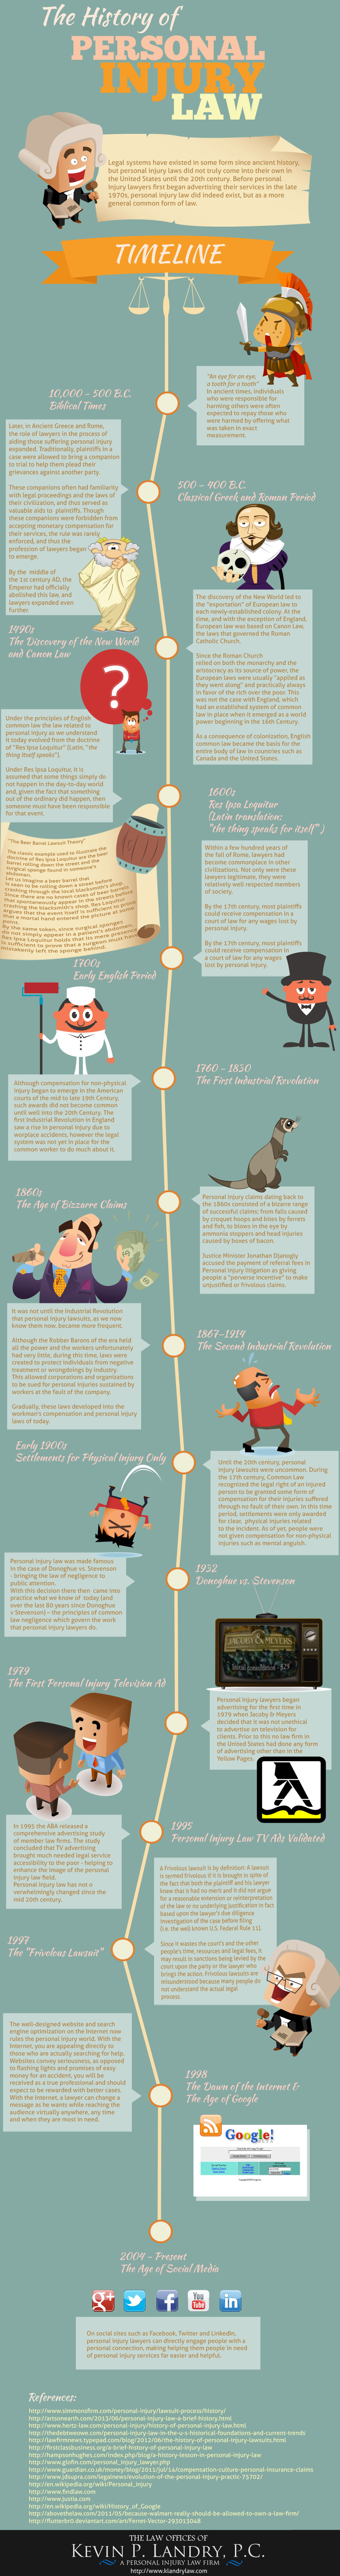 History of personal injury law infographic.